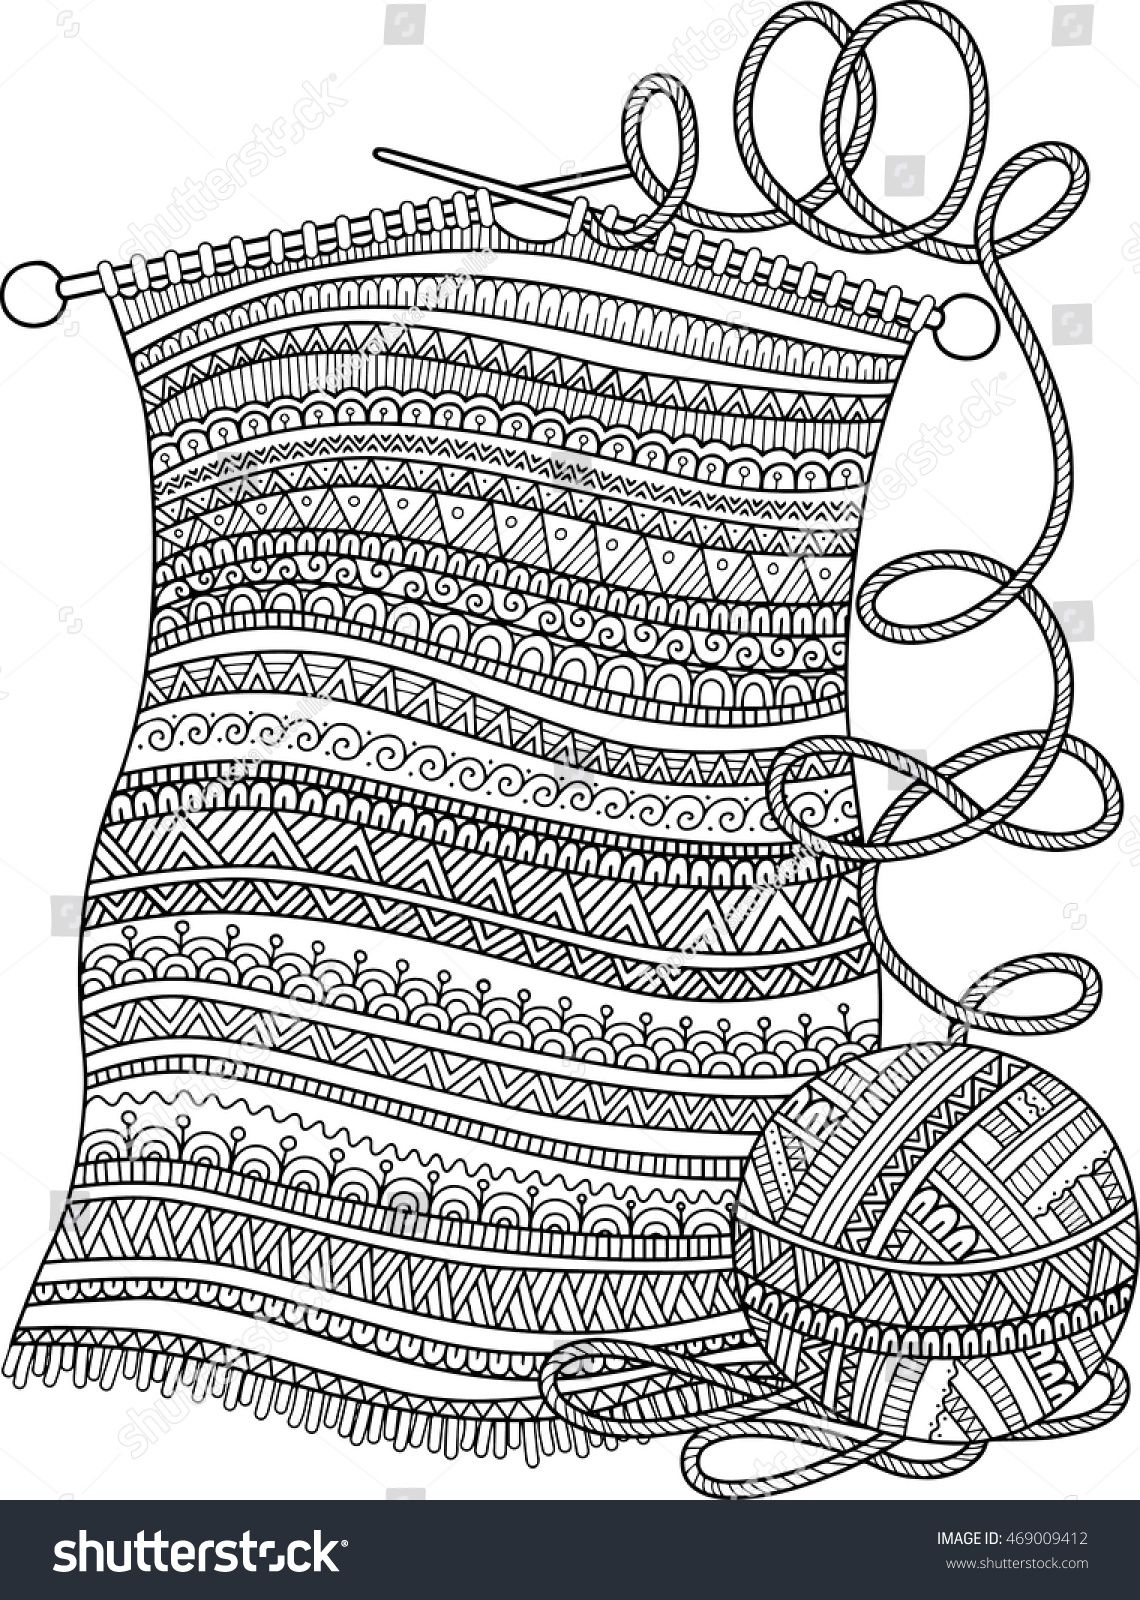 Vector Coloring Book For Adult Openwork Knitted Warm Scarf With A Ball Of Yarn And Knitting Needles